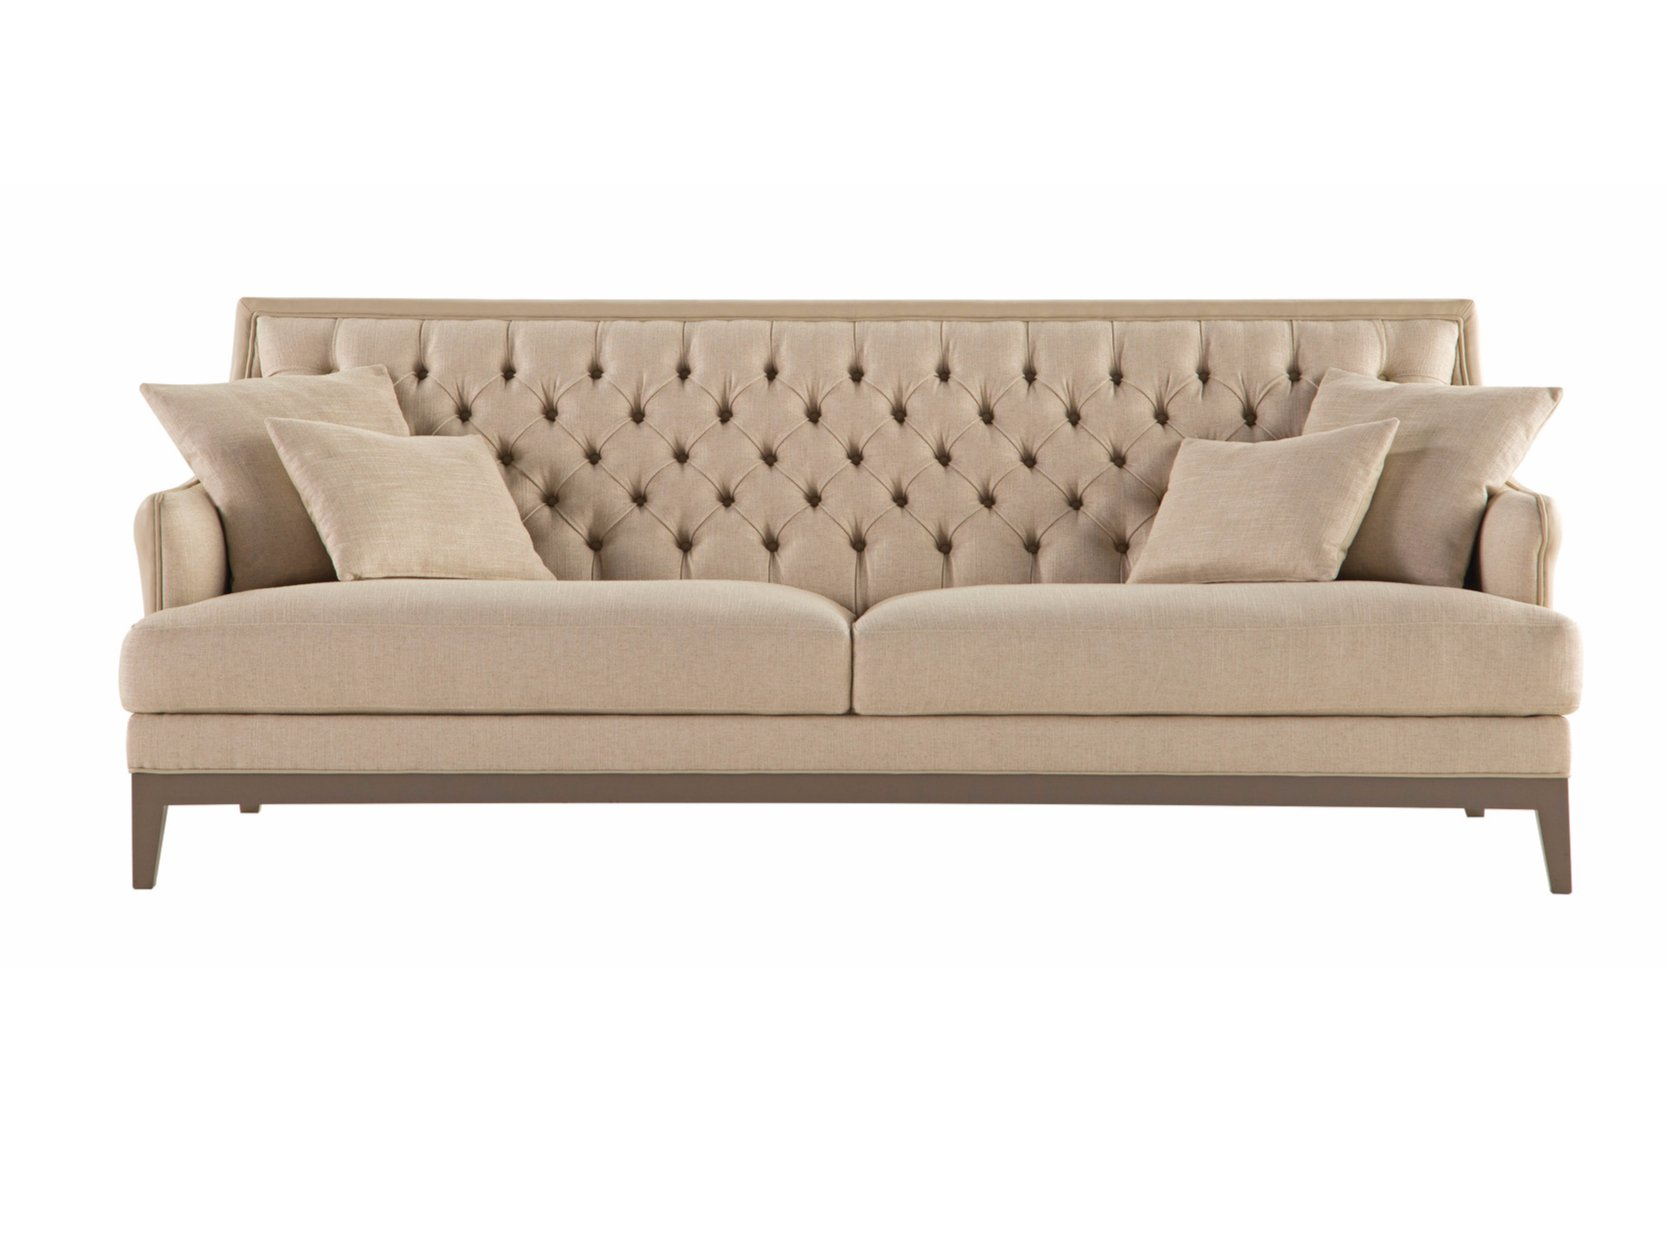 Epoq canap collection epoq by roche bobois design les - Roche bobois canape cuir ...